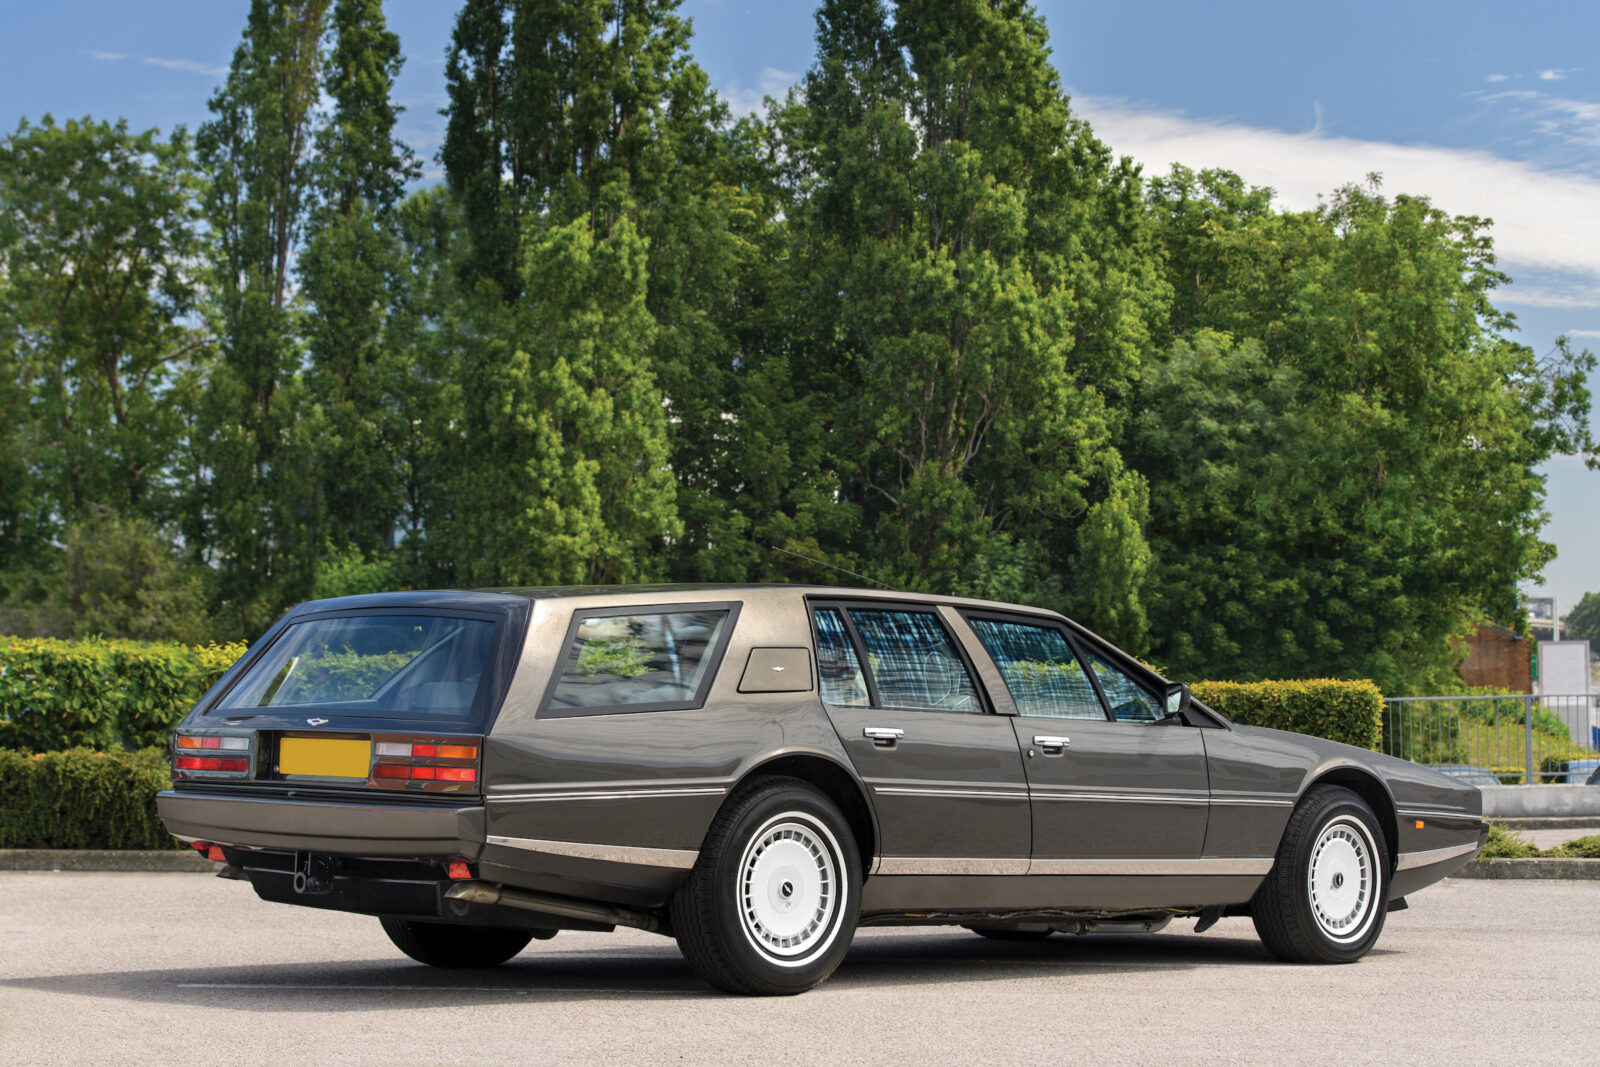 Aston Martin Lagonda Shooting Brake Rear